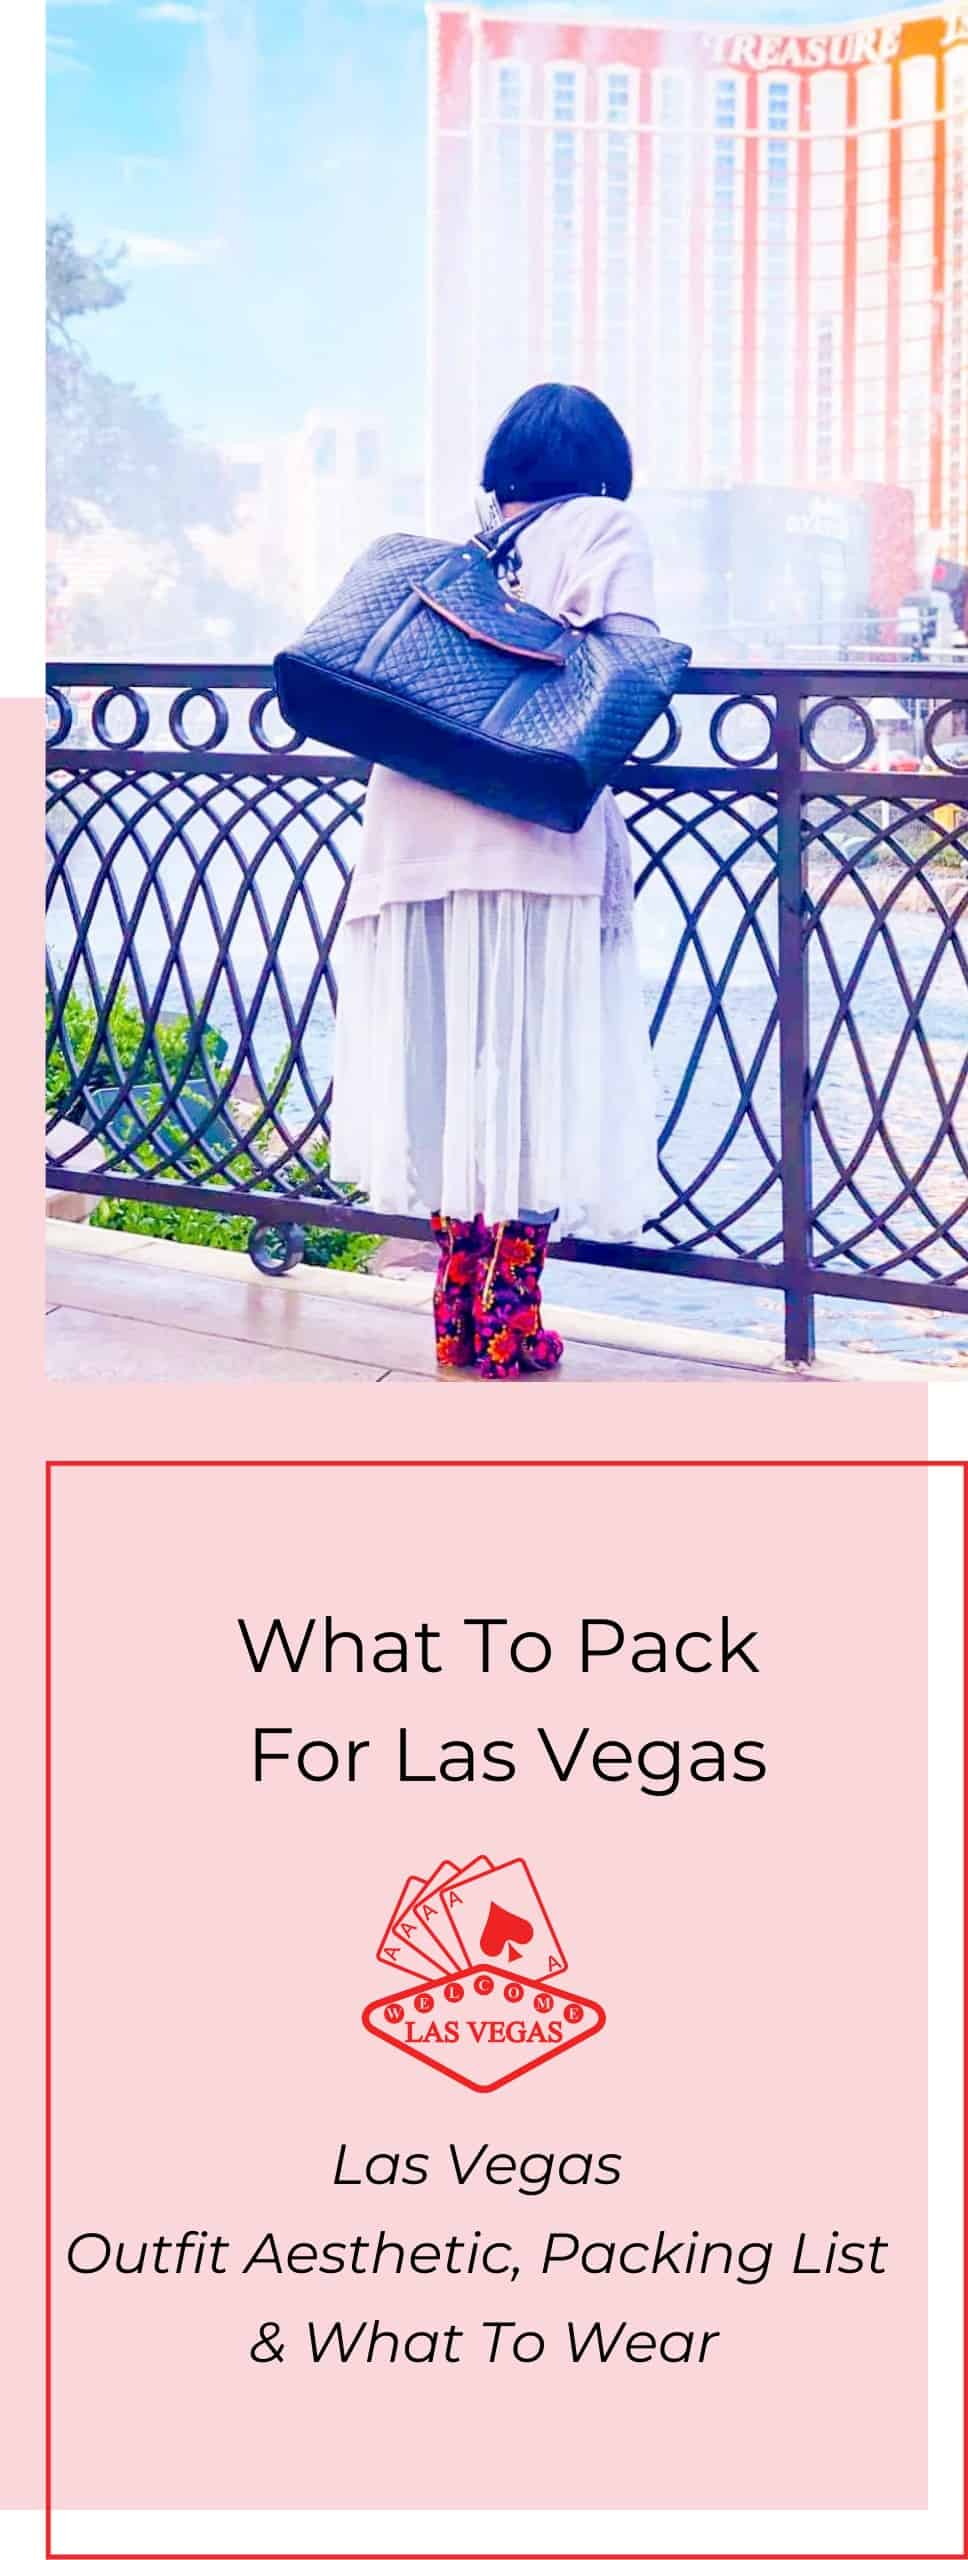 Las Vegas Outfit Aesthetic, Packing List & What to Wear